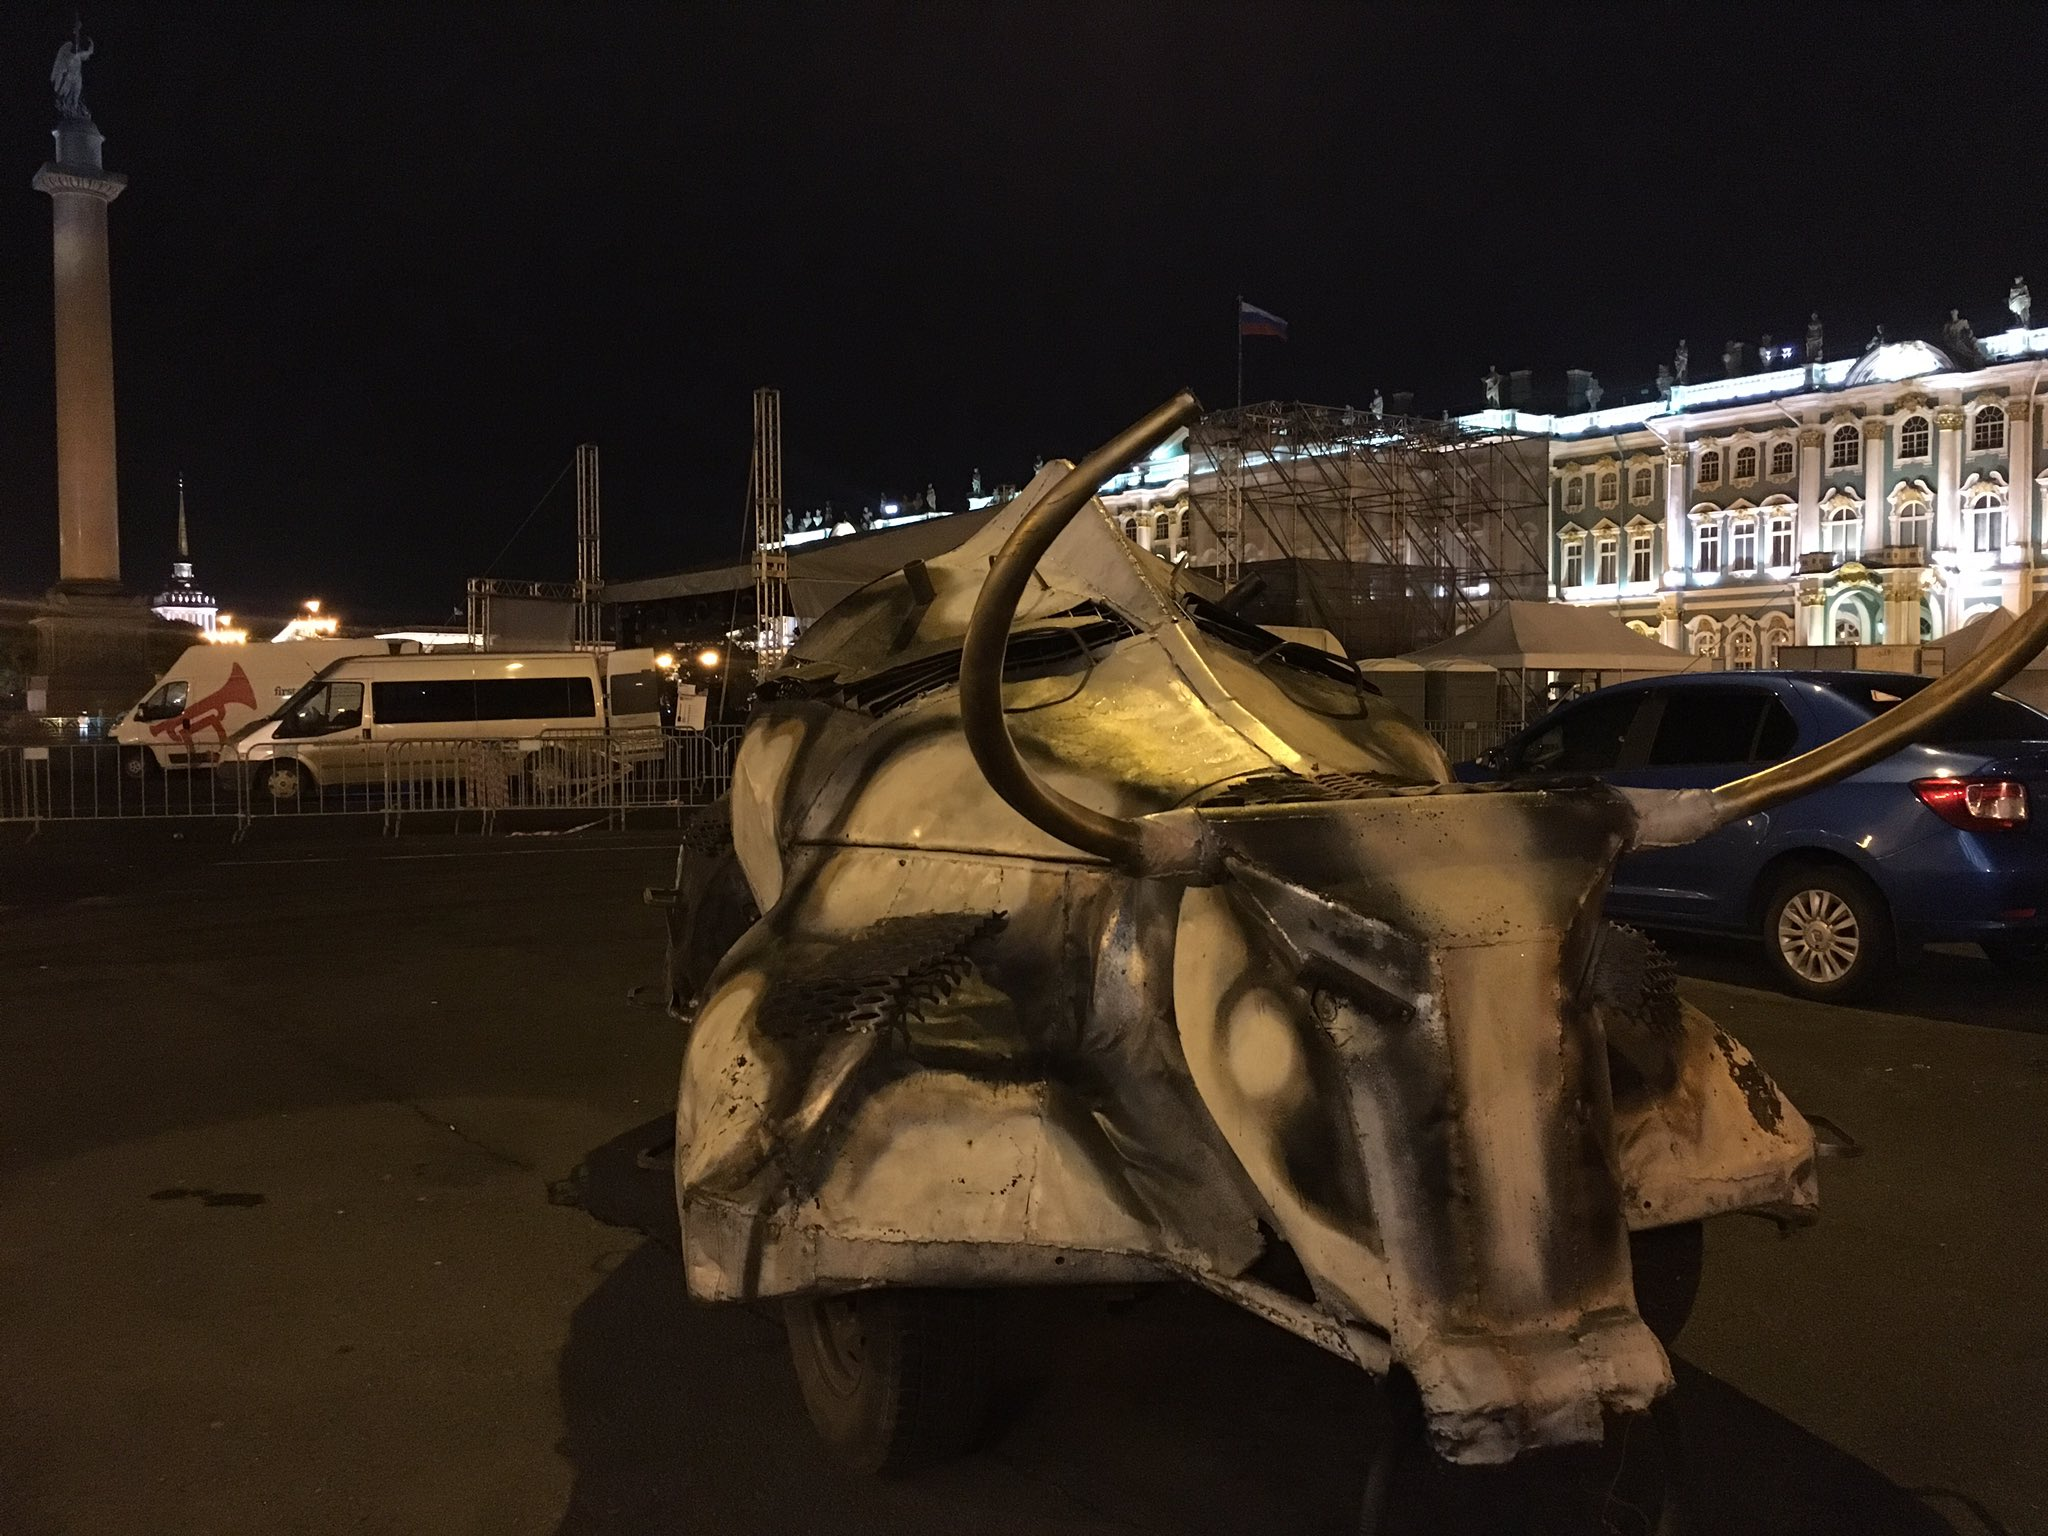 Meanwhile, on Palace Square in St Petersburg right now... https://t.co/VPi8kCjRwk